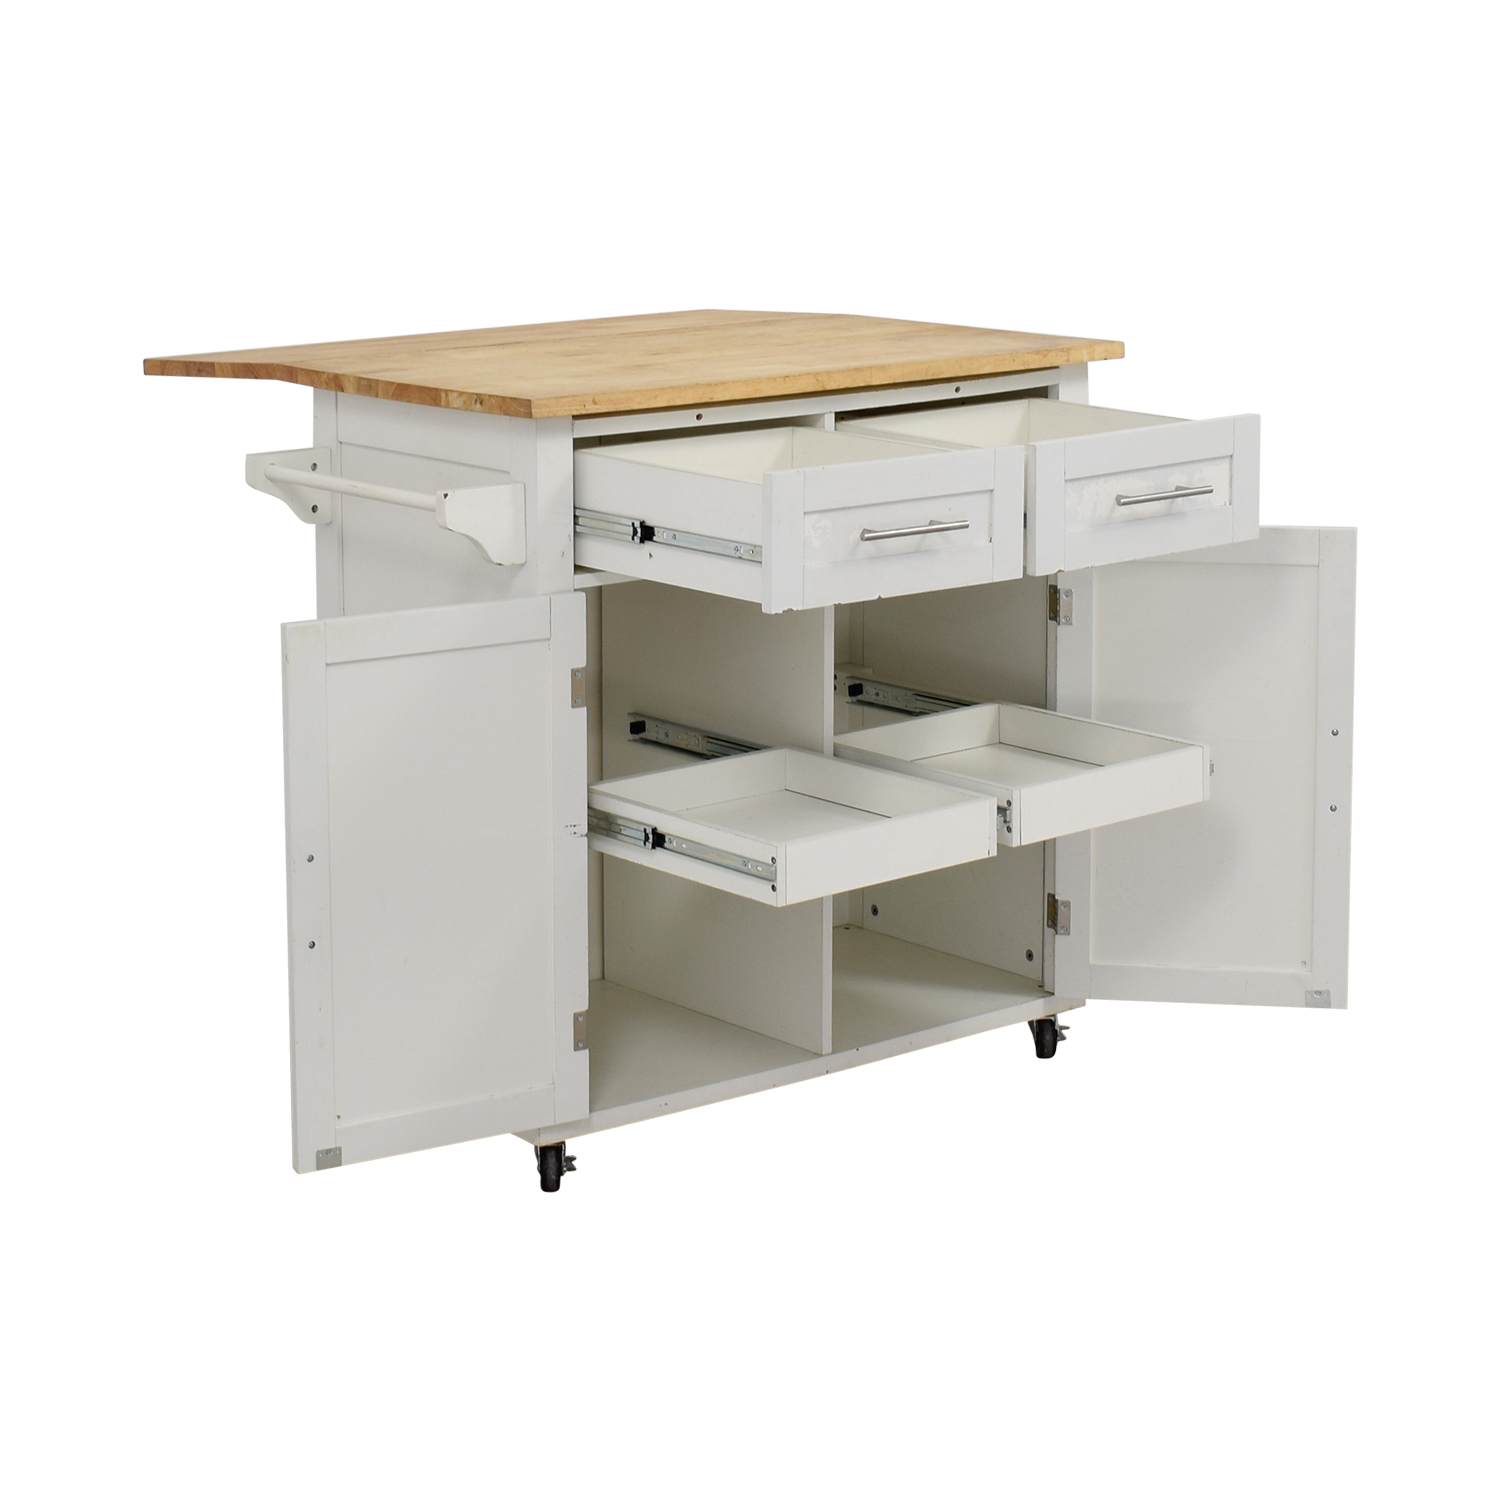 39 OFF  Target Target White Kitchen Island  Tables